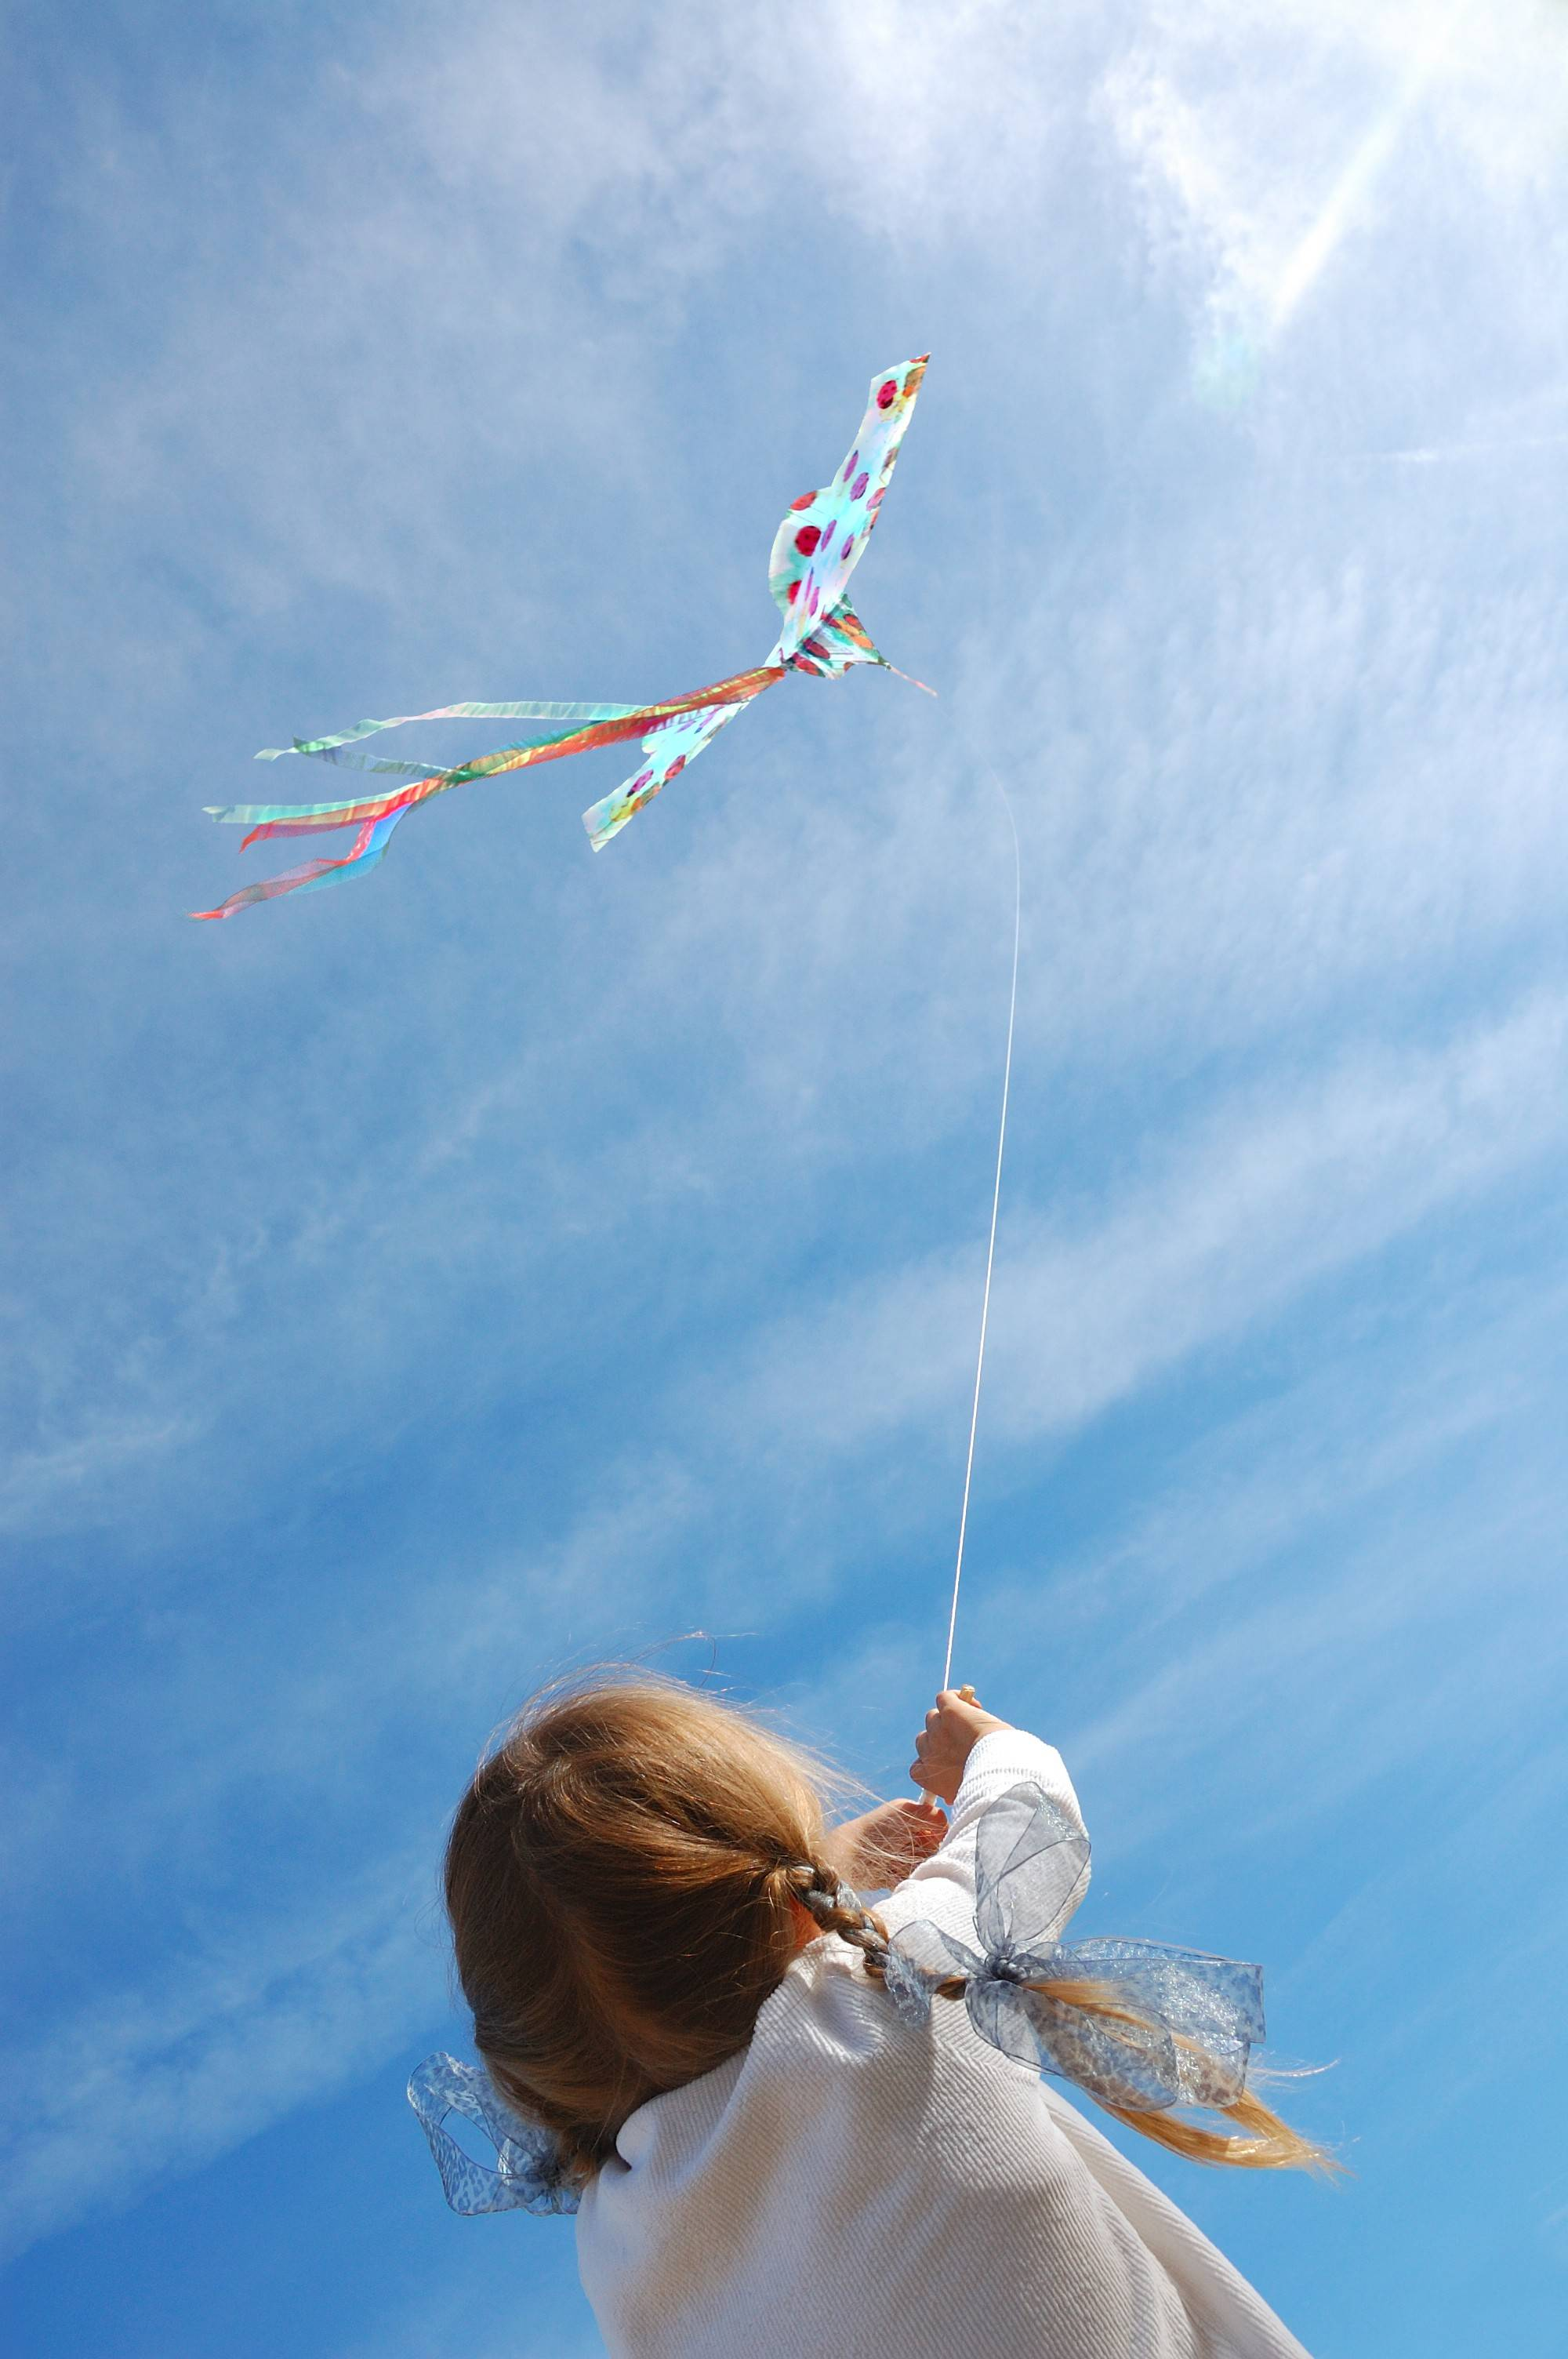 One can fly a kite, make a kite and watch professional kite flyers in action at the Wheaton Park District's Go Fly a Kite! event.